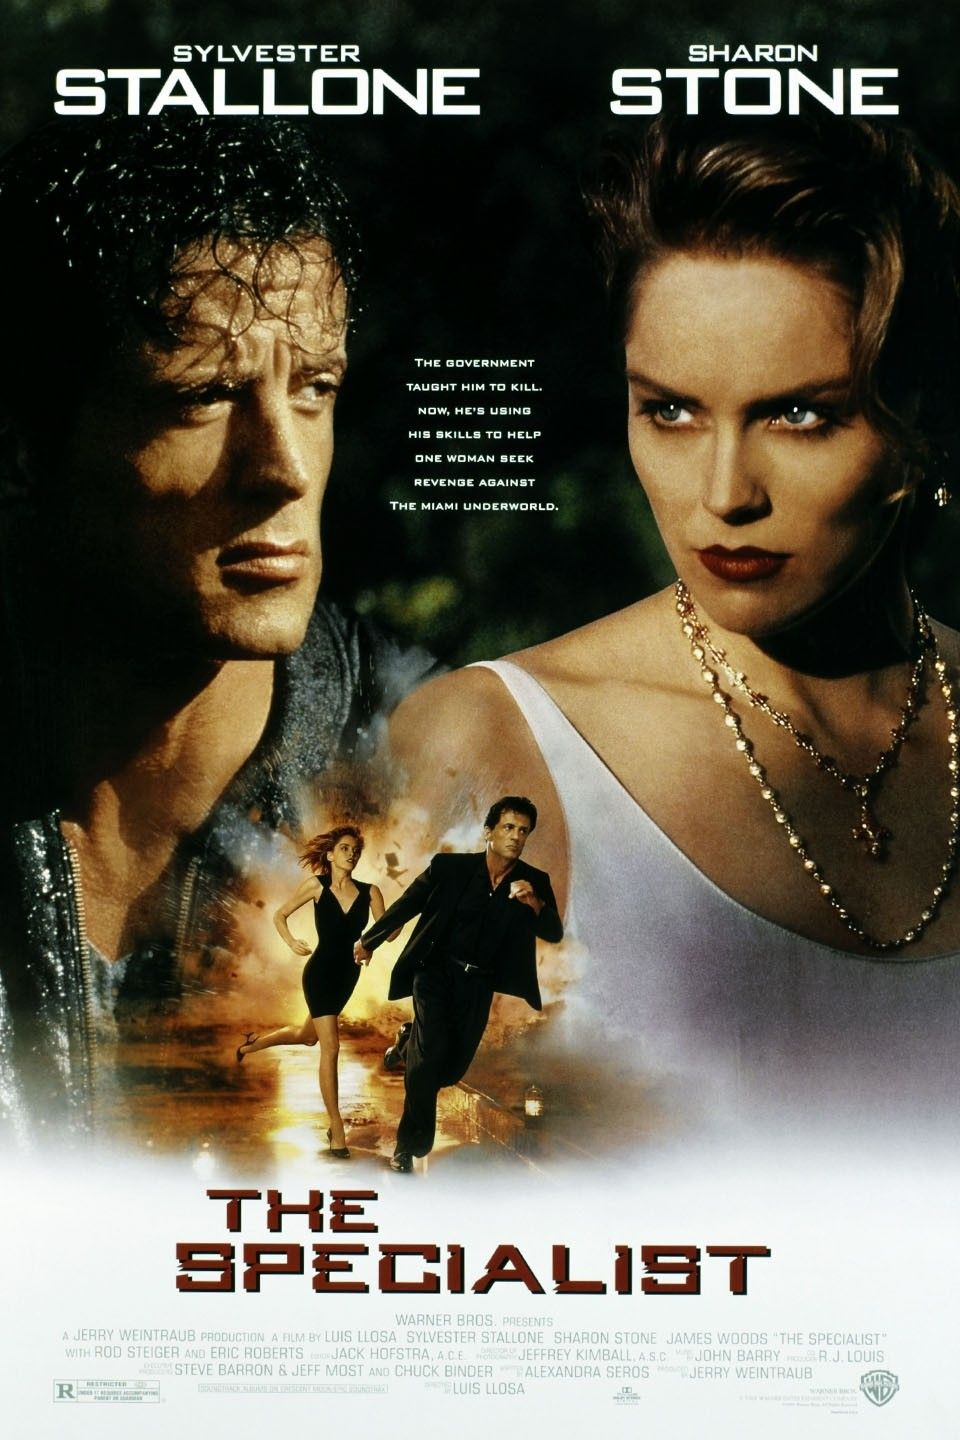 The Specialist 1994 Free Movies Online Stallone Movies Movie Posters